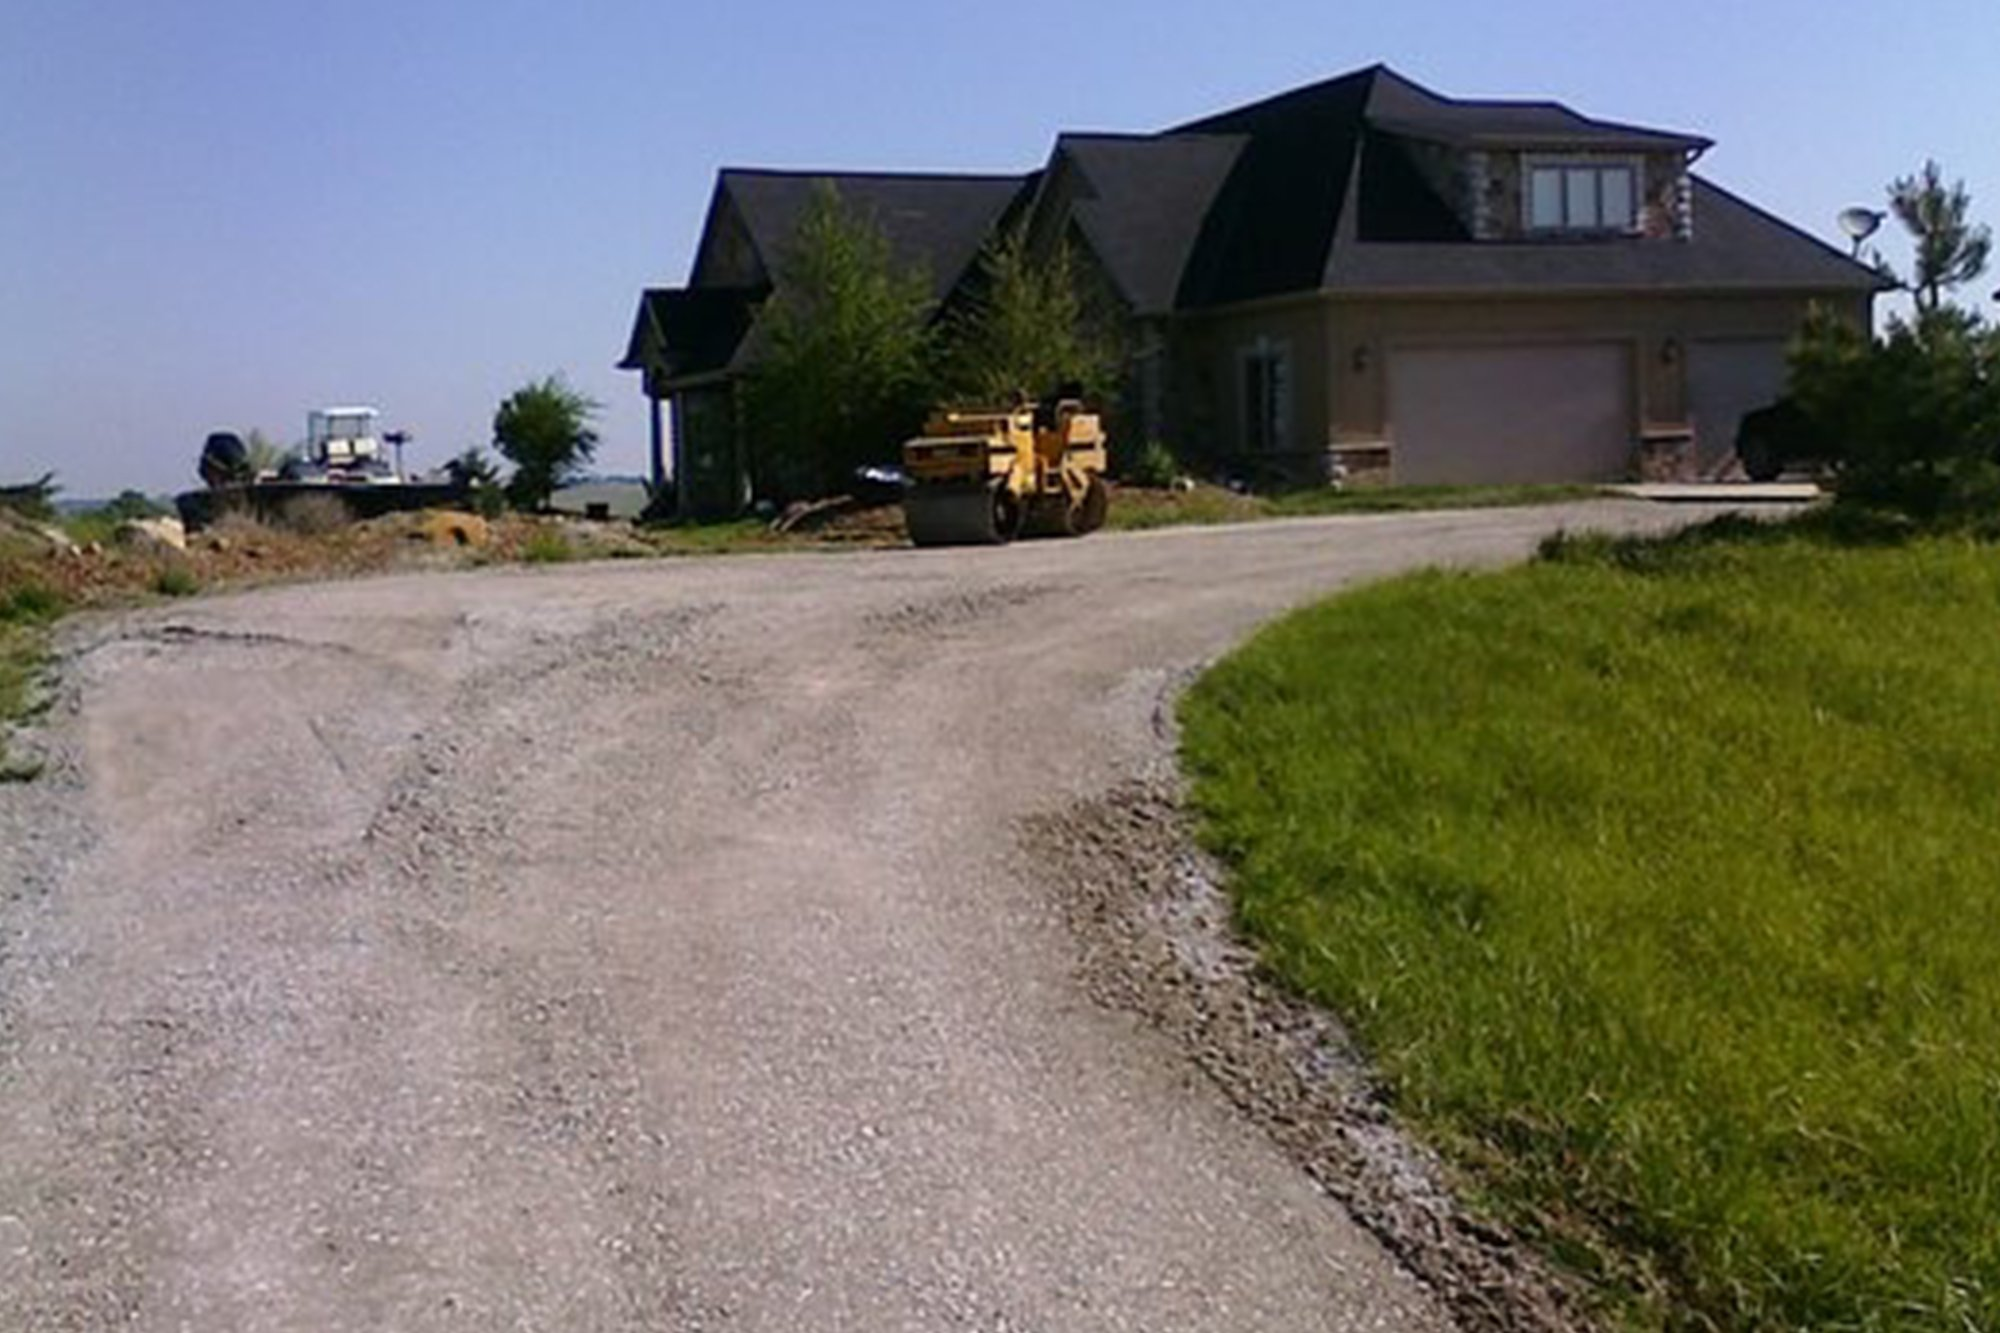 Lincoln Paving Asphalt Repair and Patching Lincoln Asphalt paving and overlays home feature - APMS Lincoln Paving Services